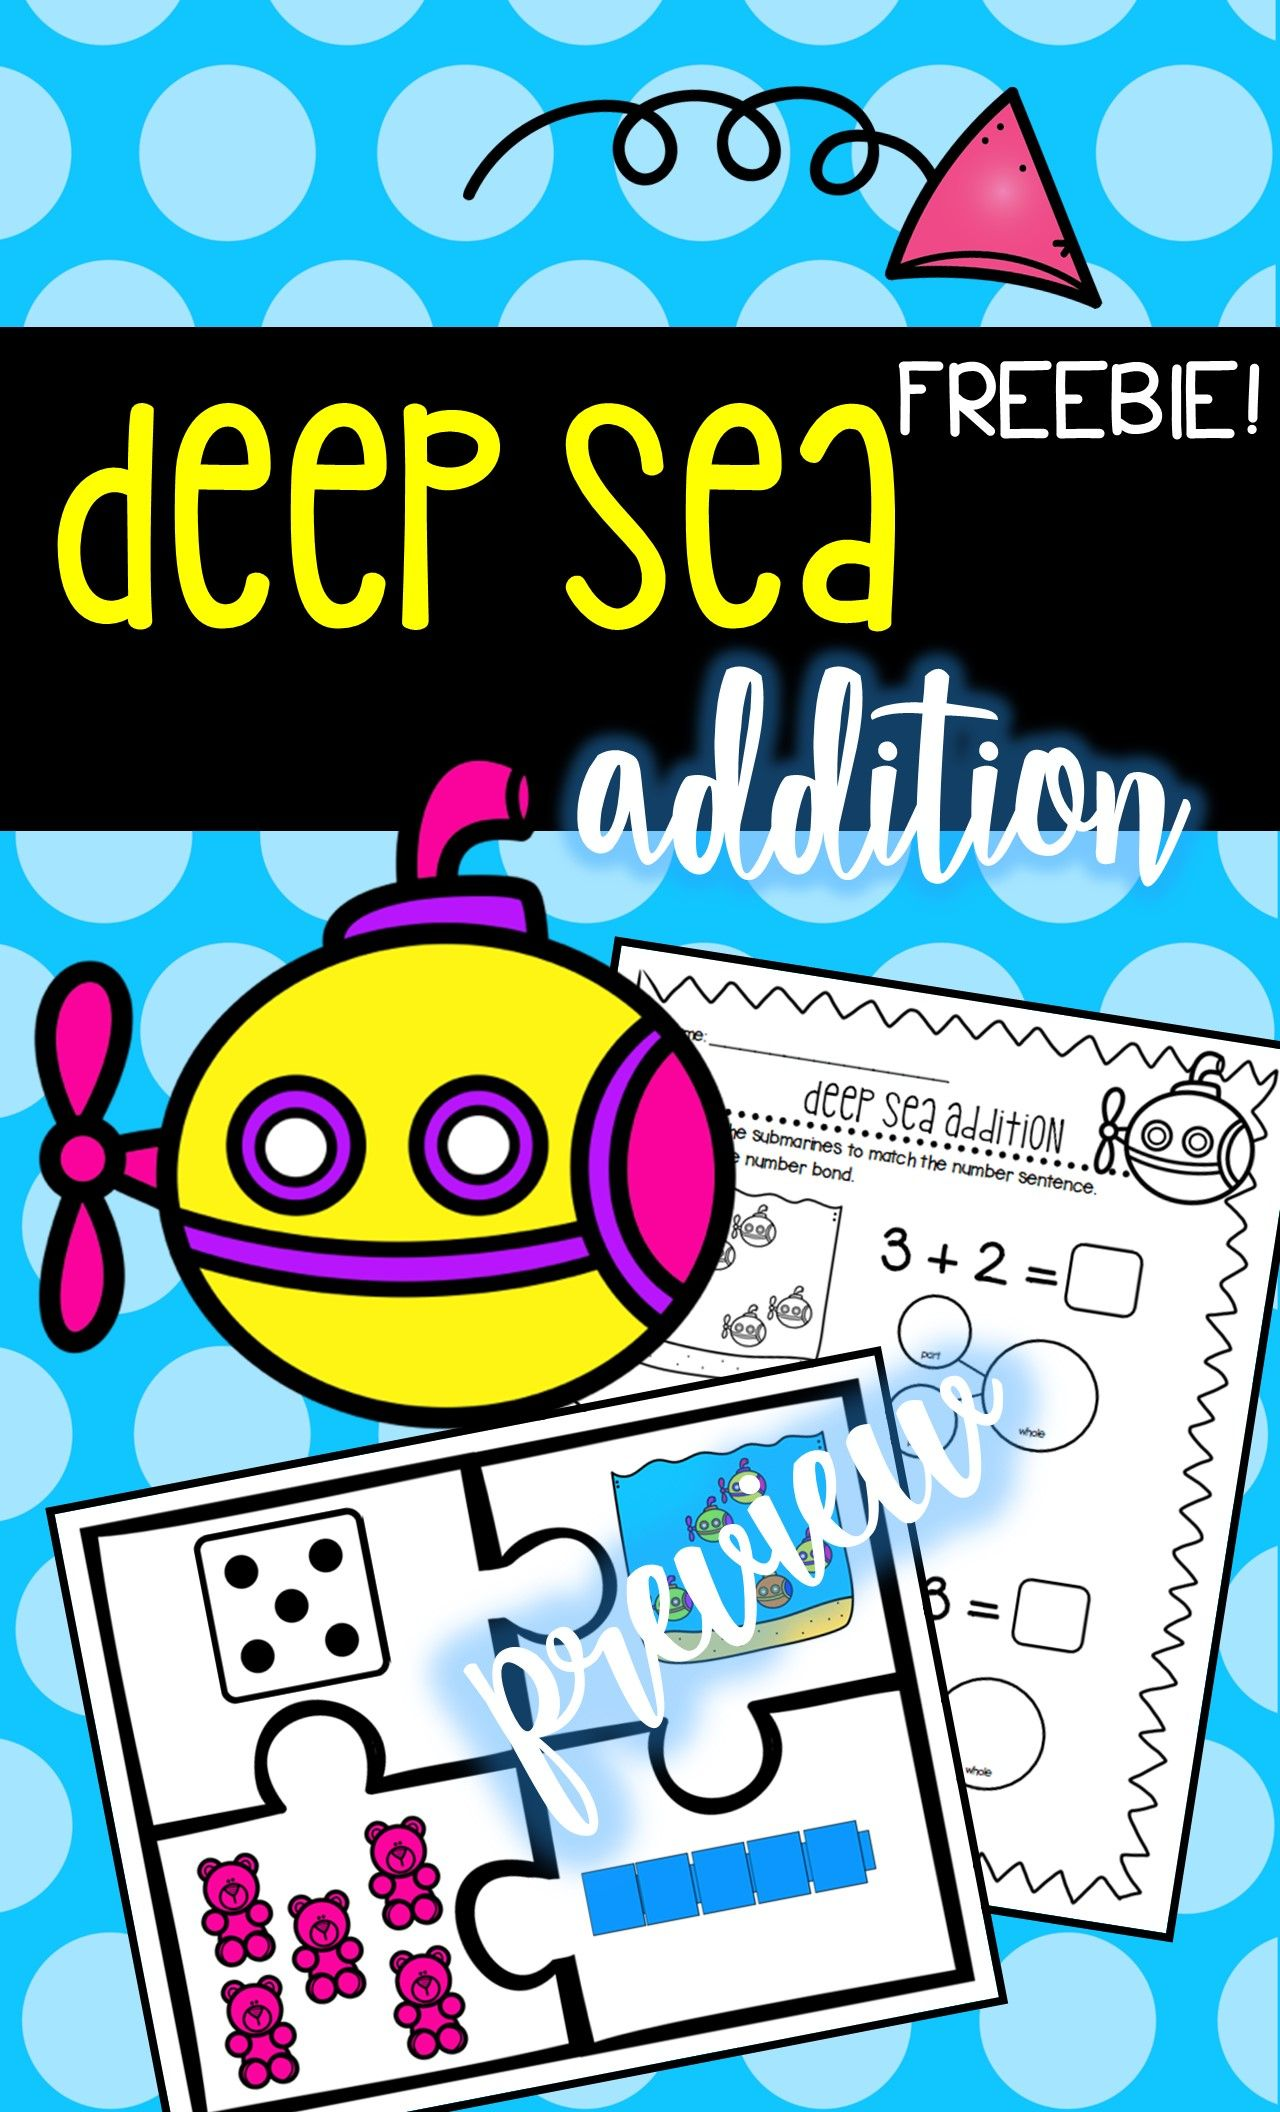 Deep Sea Addition K 1st In